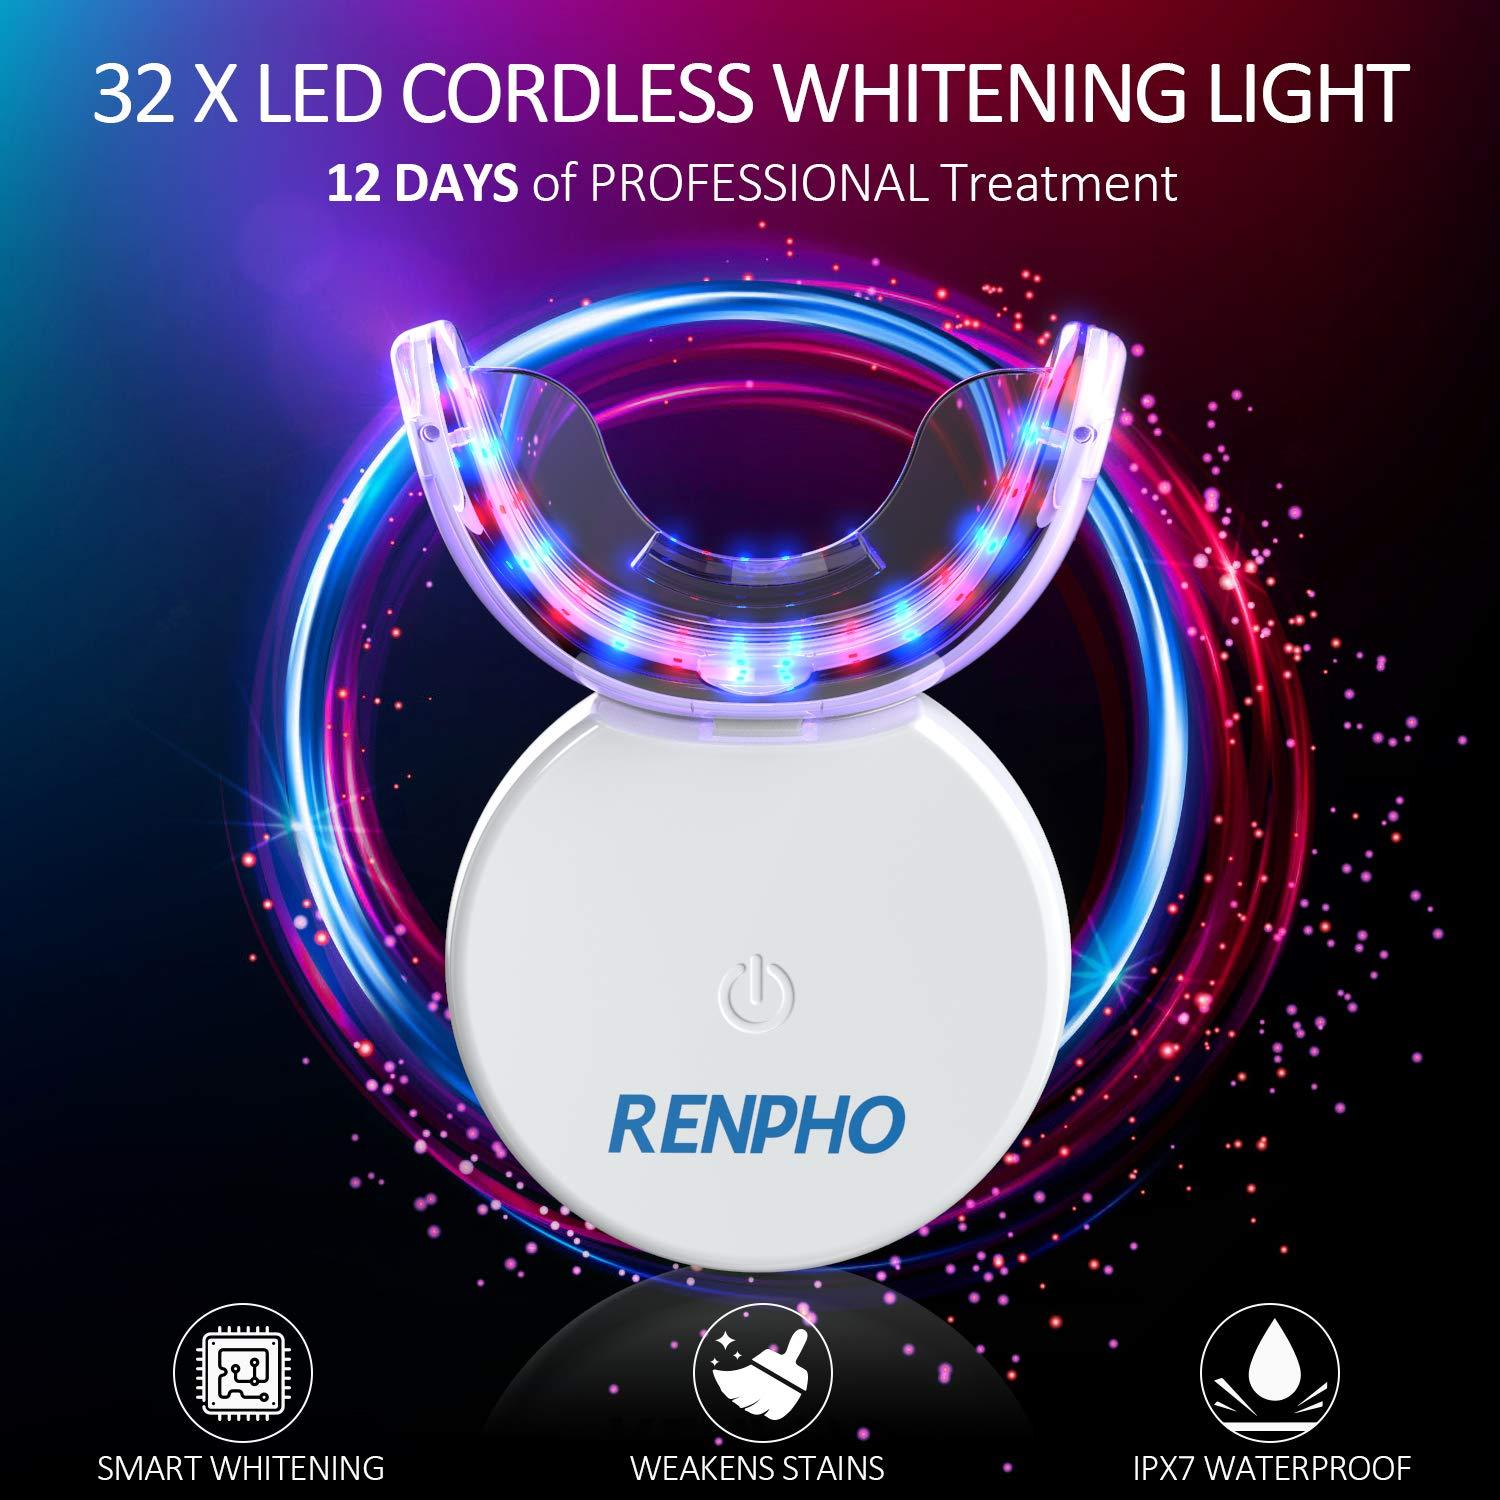 Teeth Whitening Kit with Led Light, RENPHO 32LED Accelerator Light Teeth Whitening Kit for Sensitive Teeth Whitener, 3X4ml Non-Sensitive Gels, 35% Carbamide Peroxide, Mouth Tray, Built-in Battery: Beauty